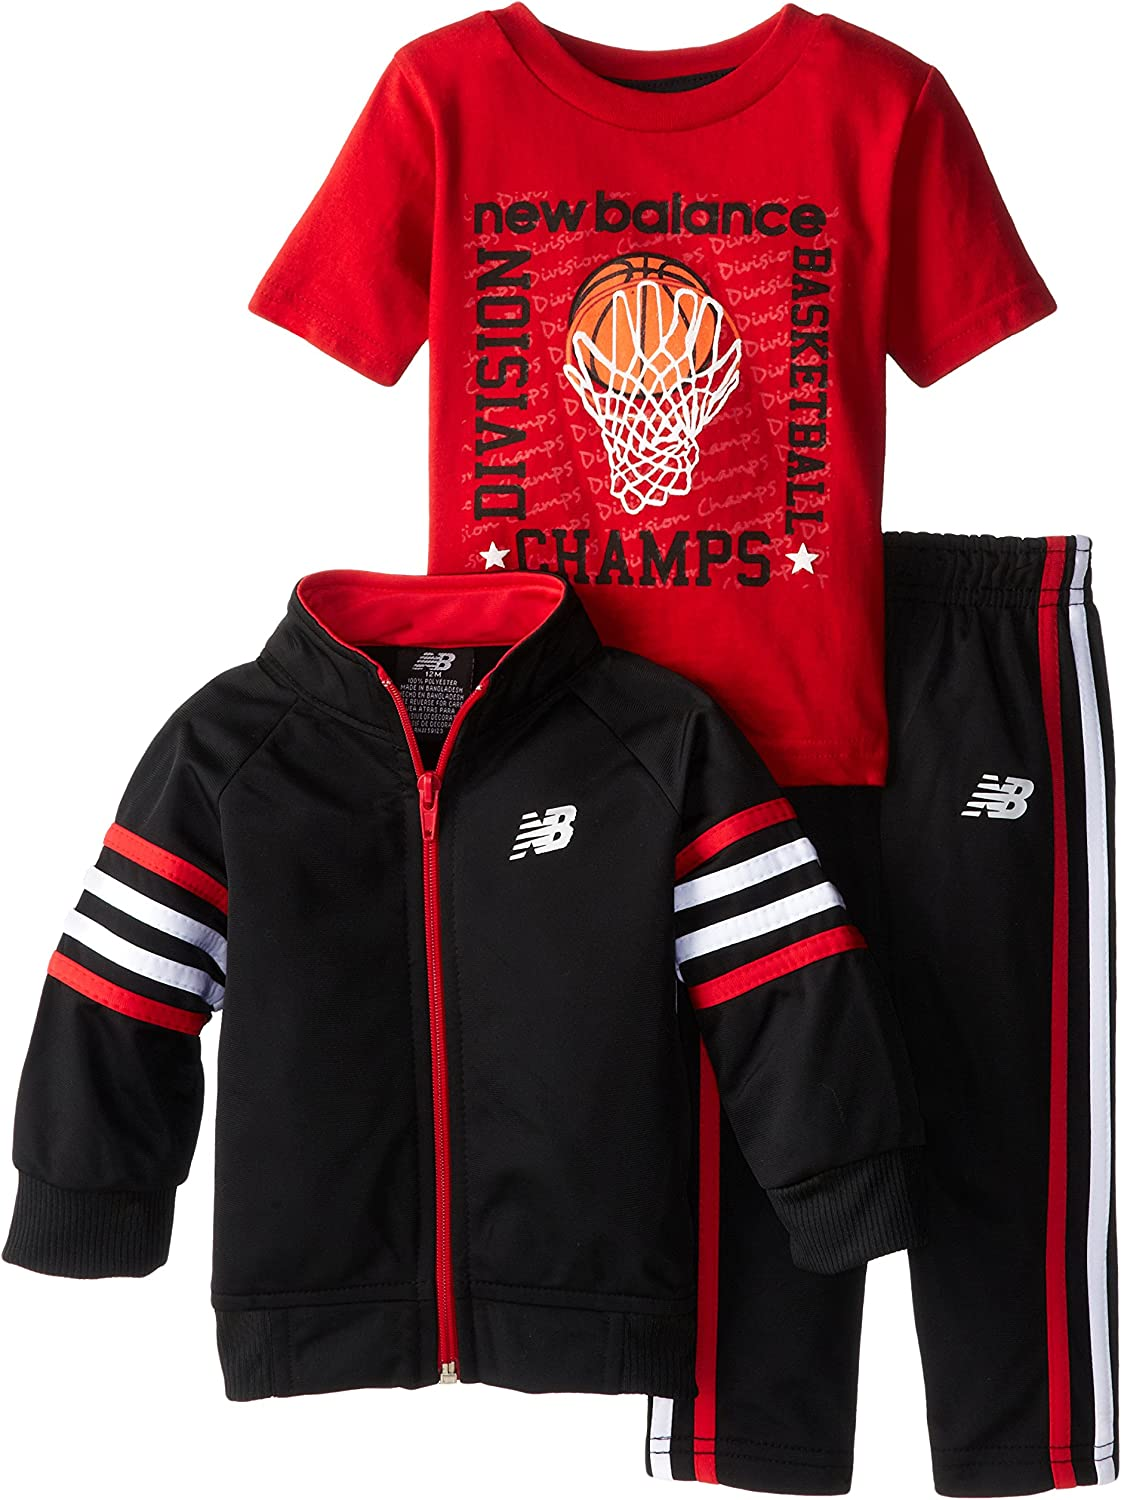 New Balance Baby Boys' Brushed Tricot Jacket and Pant with Jersey T Shirt Set, BLACK and RED